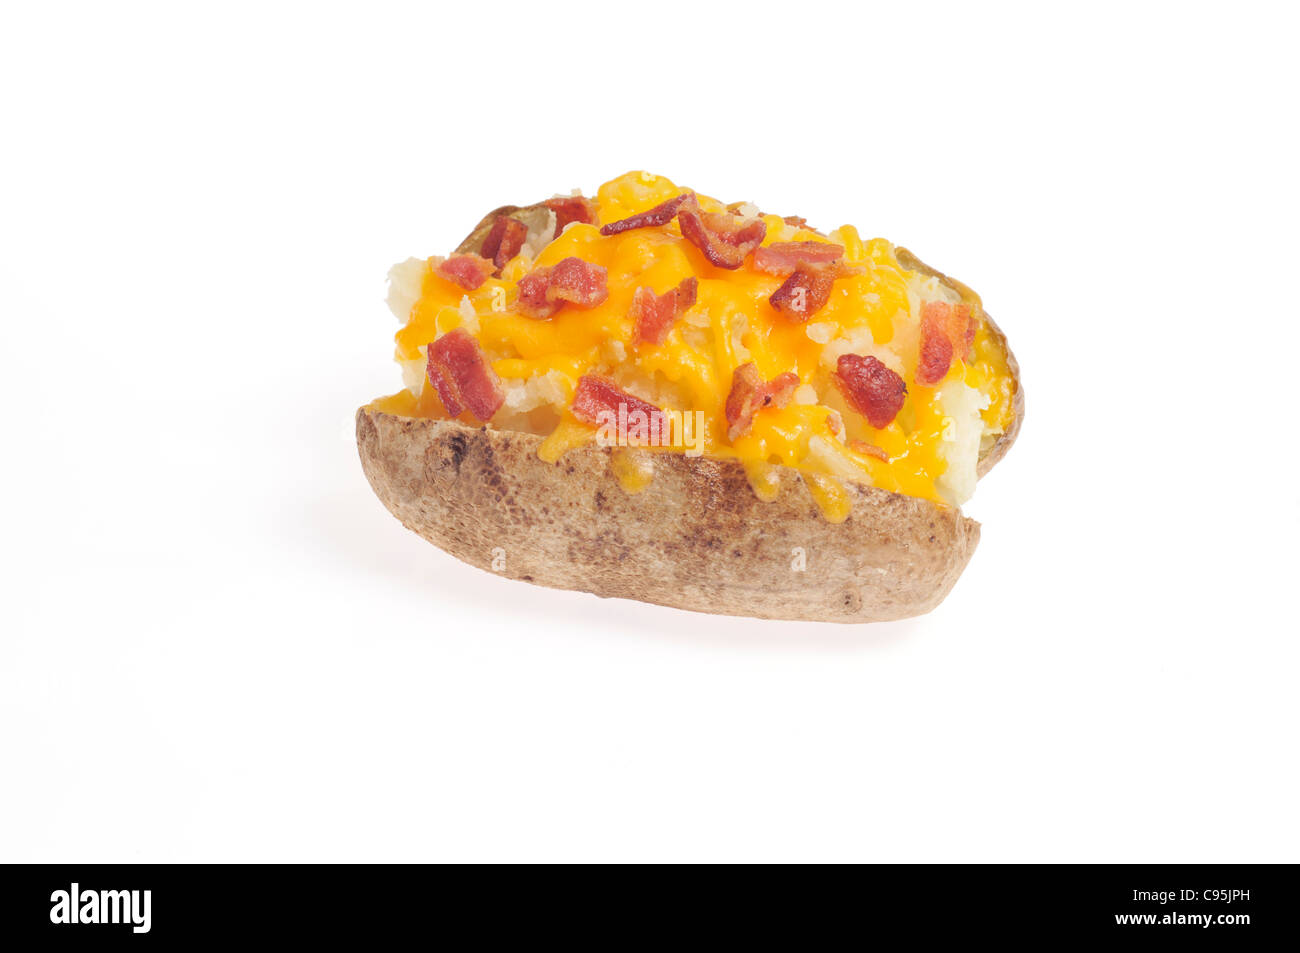 Baked potato topped with melted cheese and bacon bits on white background cutout. - Stock Image